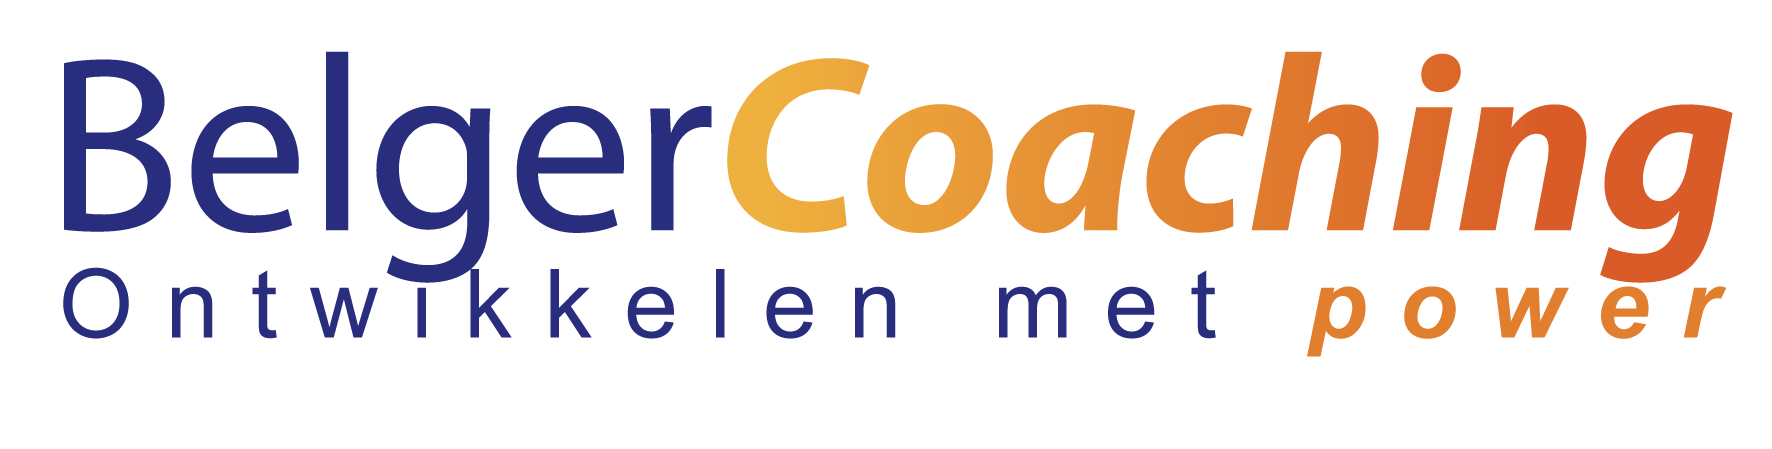 2019 BelgerCoaching transparant